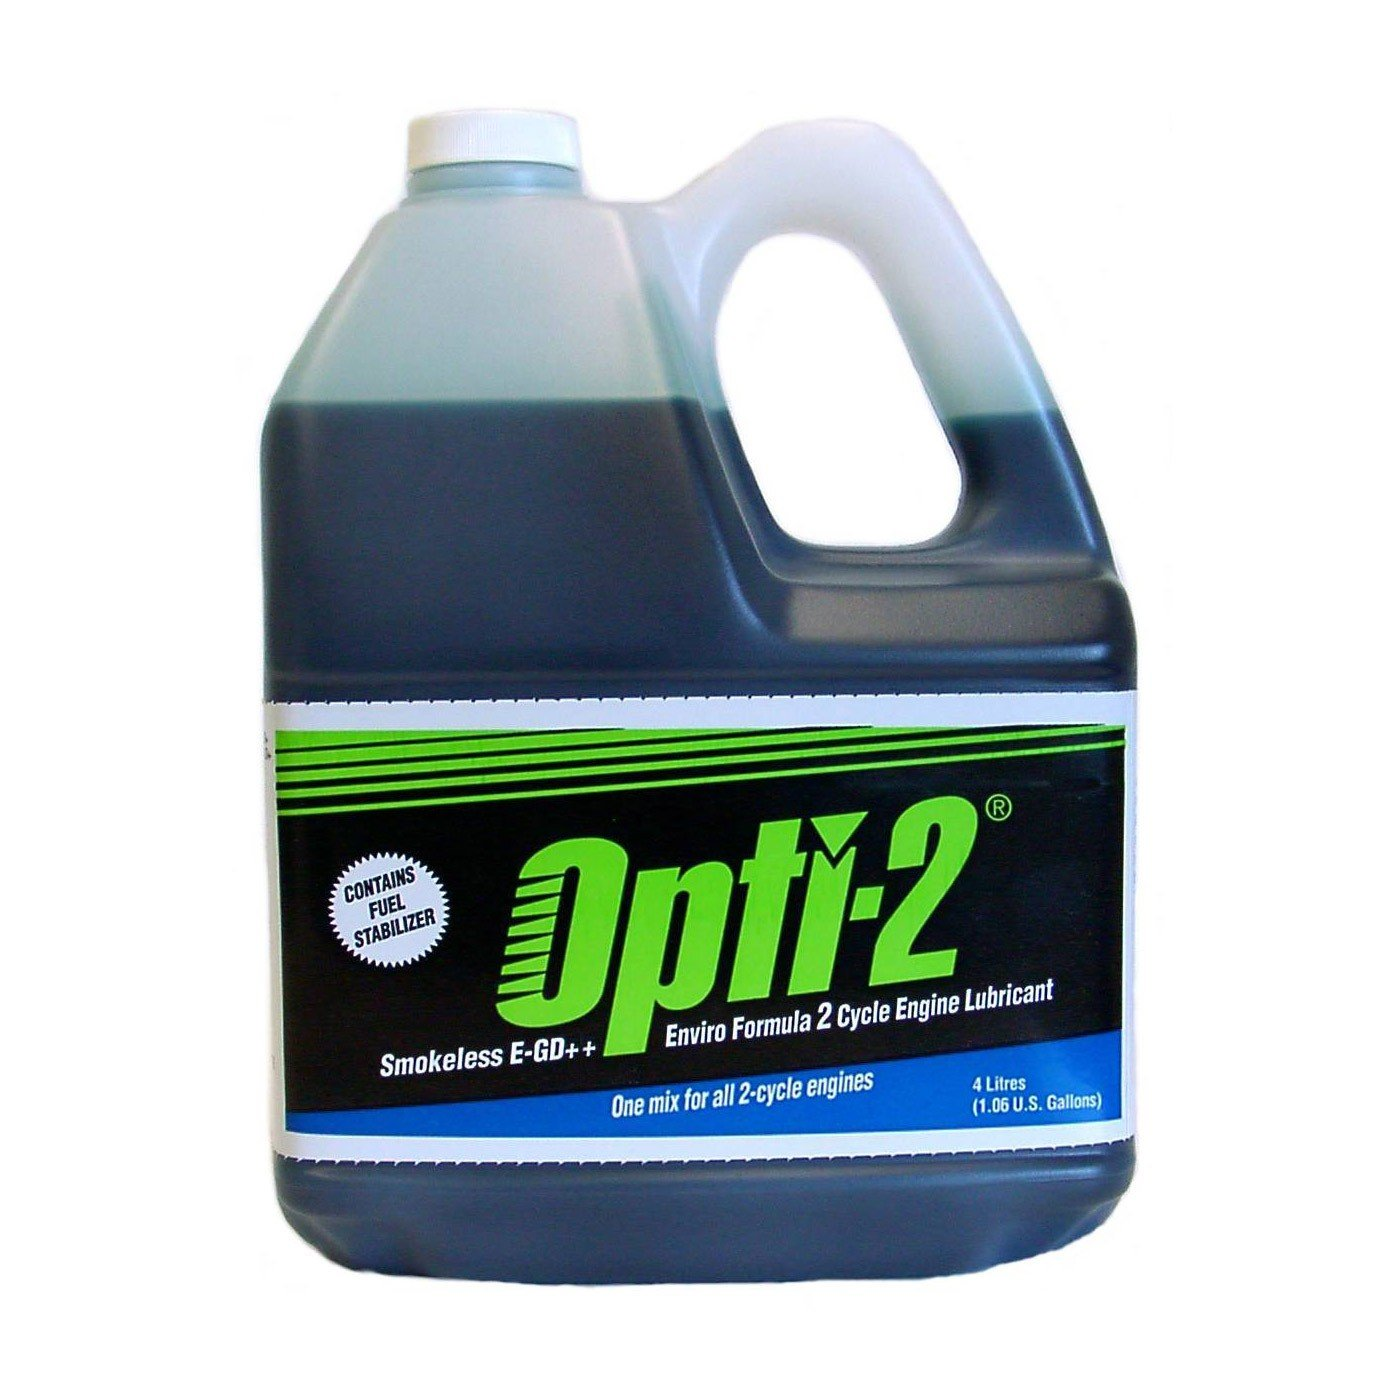 Amazon.com: opti-2 20044 – 1 1 gal Enviro Fórmula 2-Cycle ...